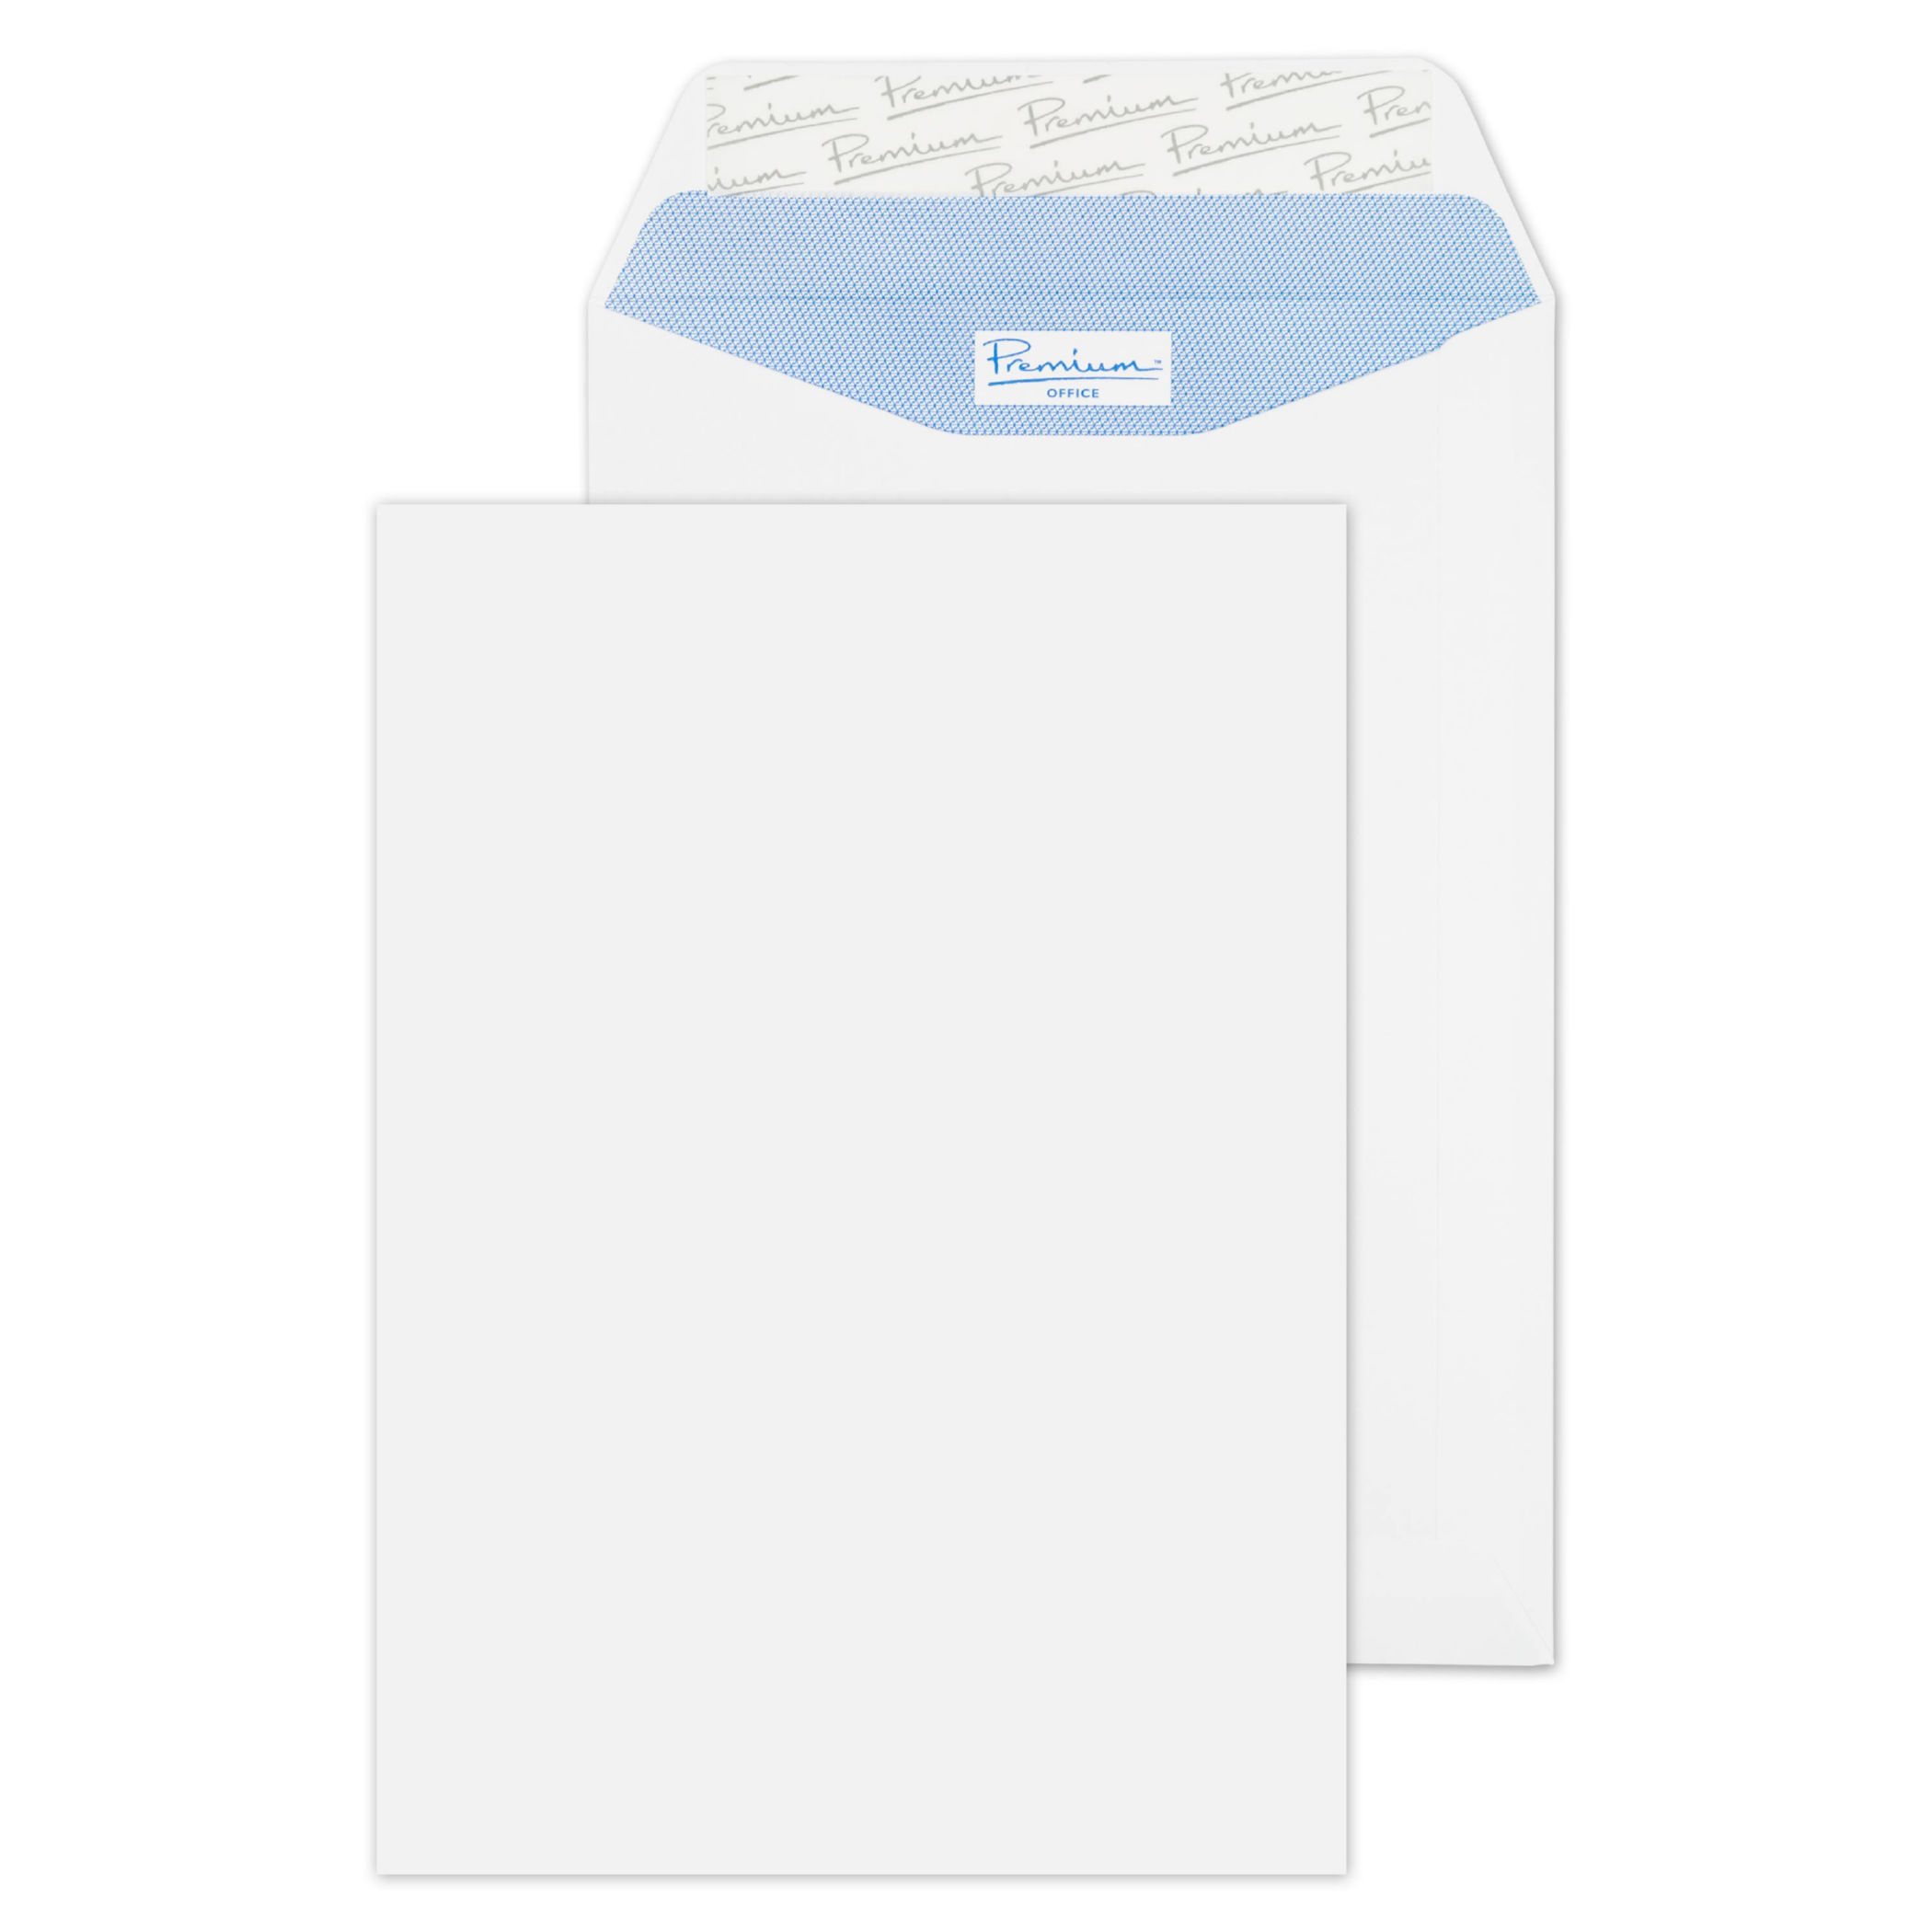 C5 Prem Business Pocket P/S C5 229x162mm Ultra White PK500